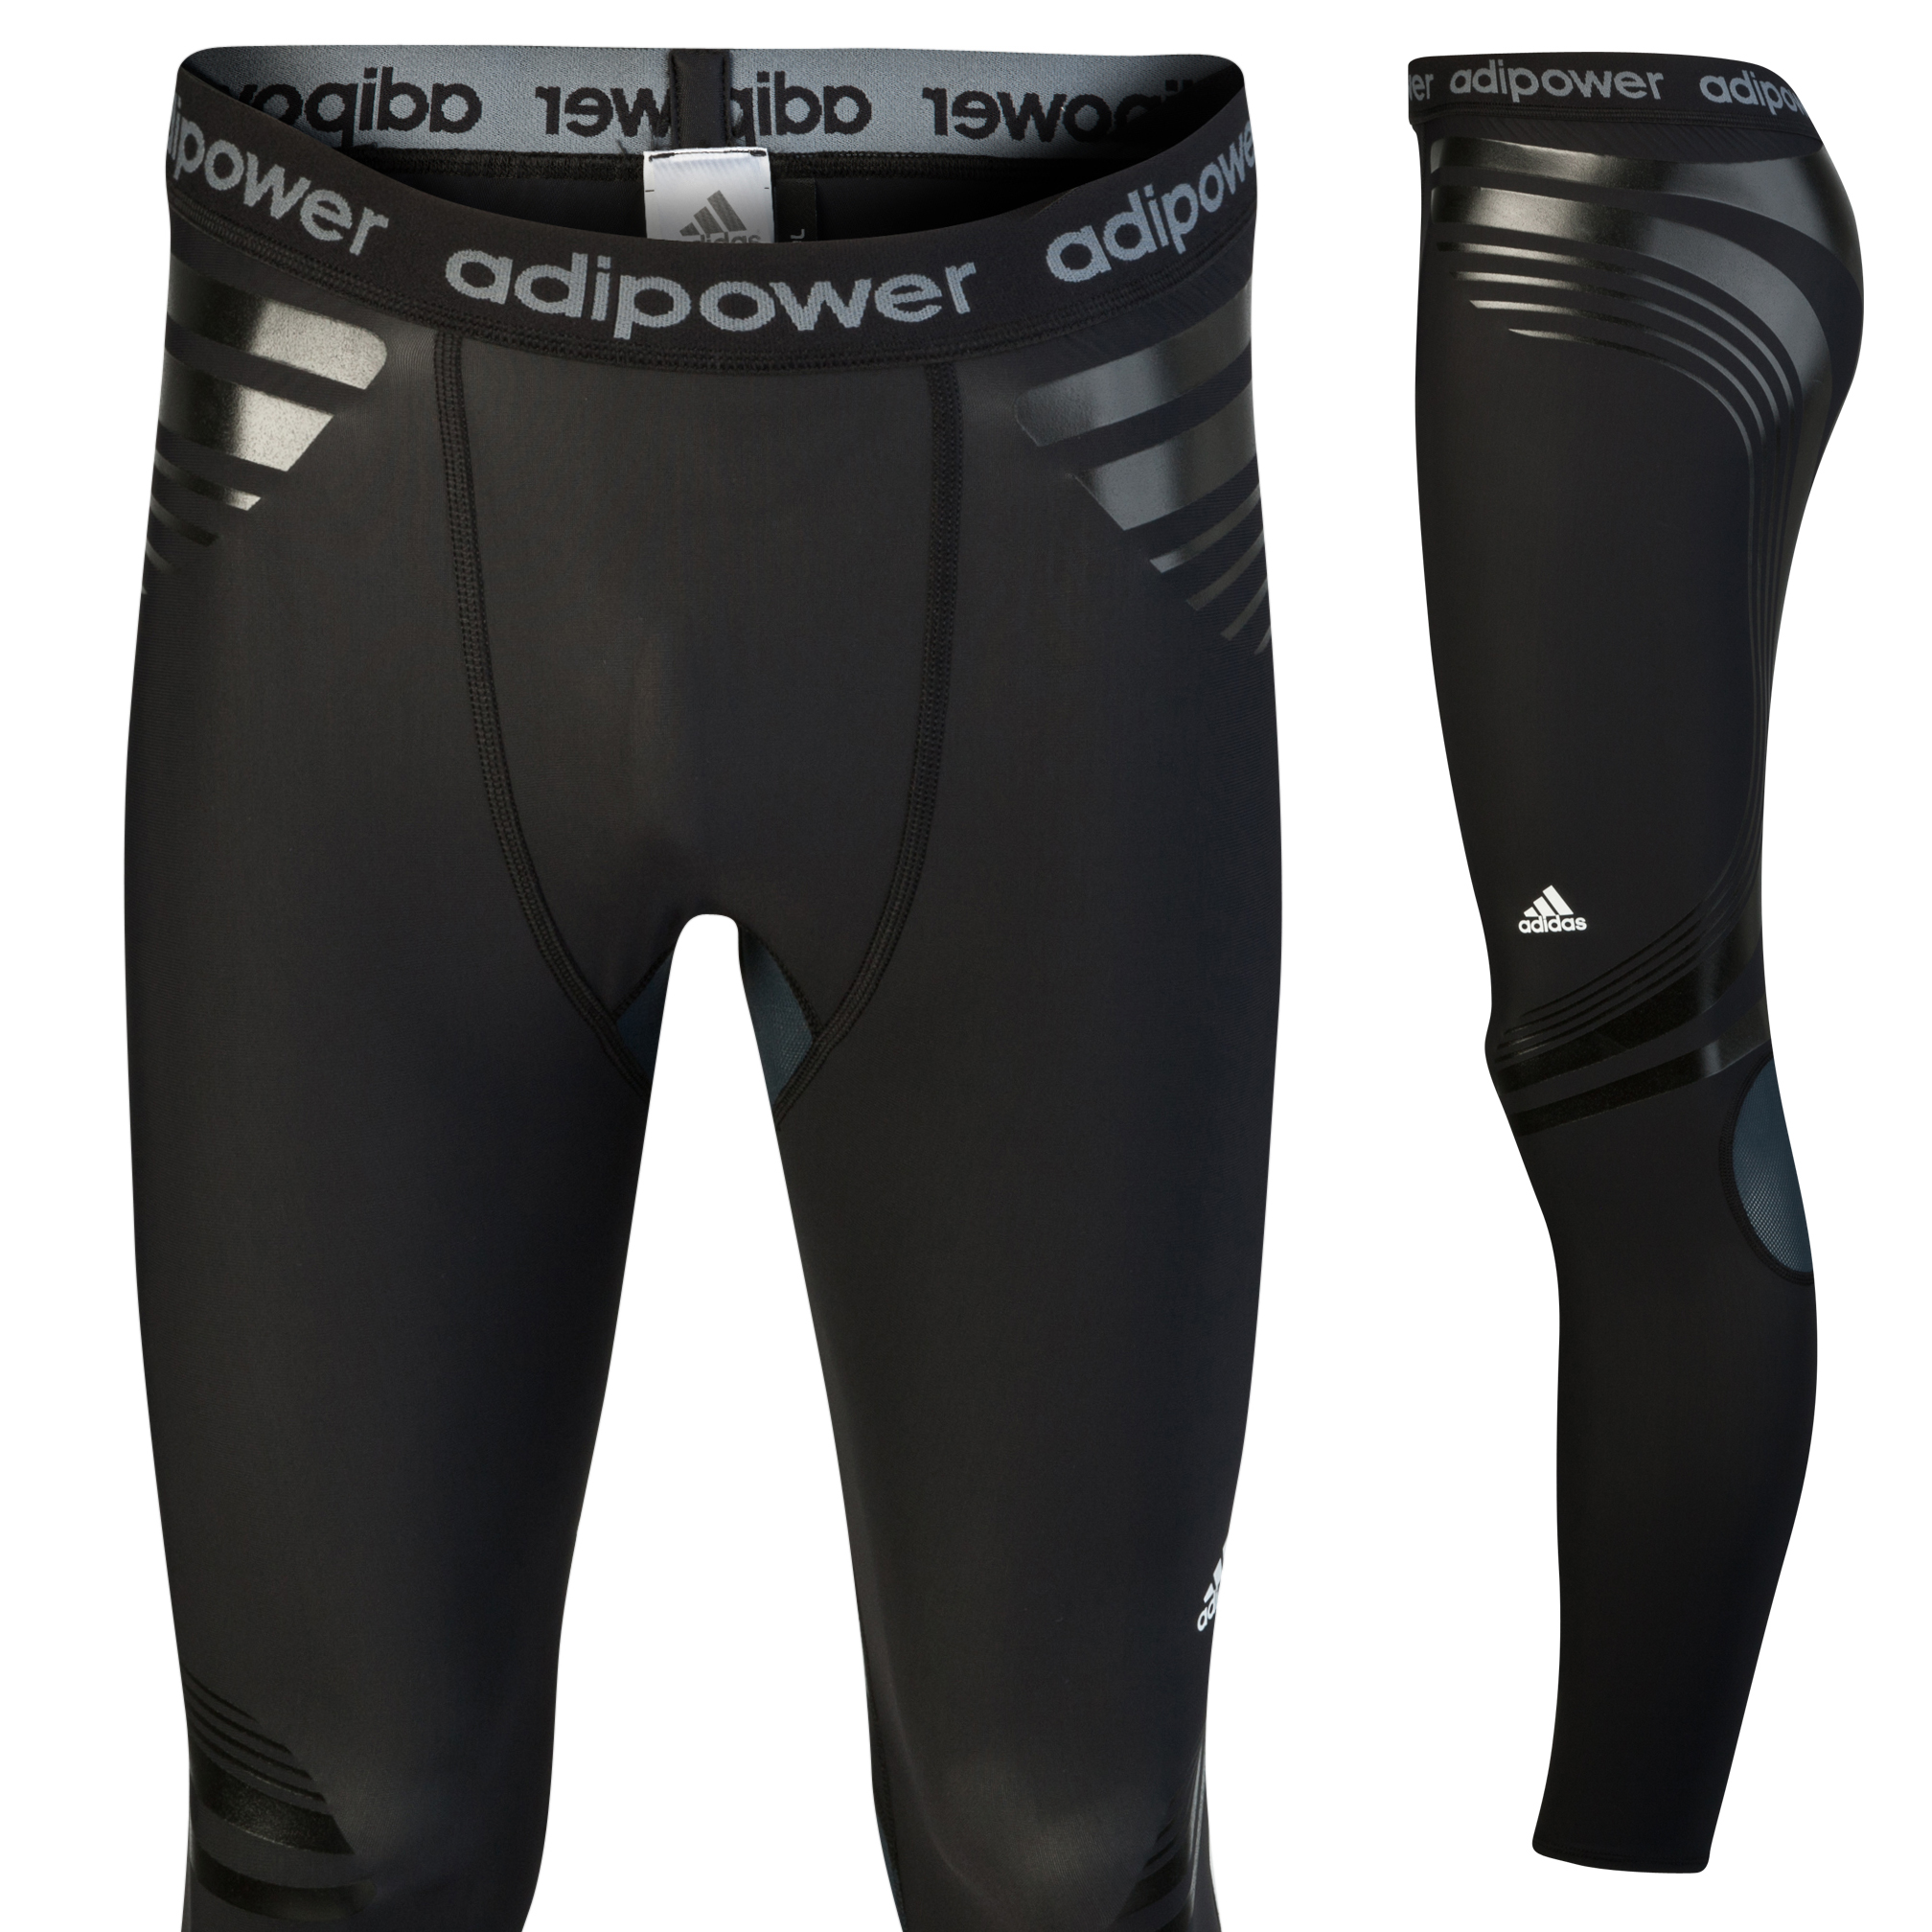 Adidas TechFit PowerWeb Tights - Black